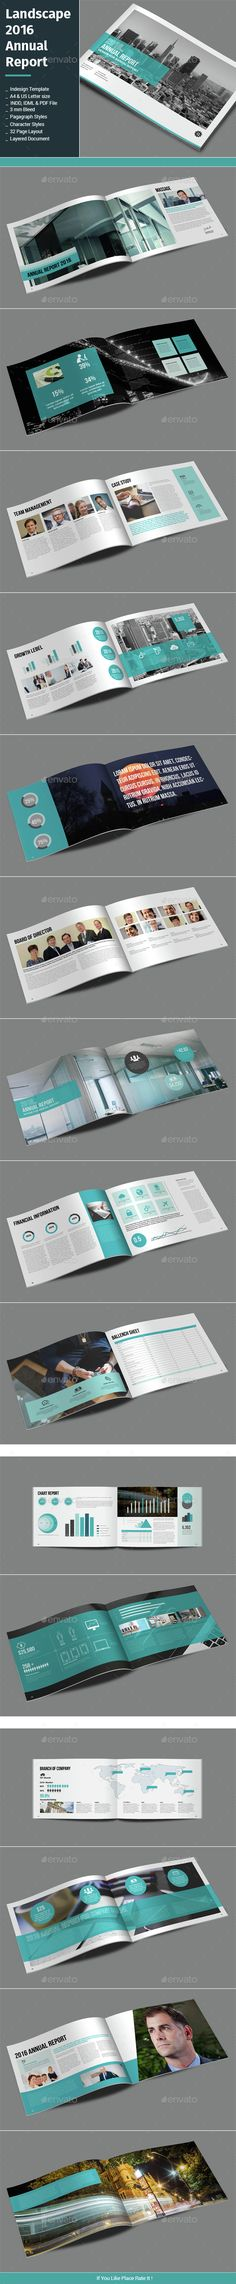 Landscape 2016 Annual Report Template PSD. Download here: http://graphicriver.net/item/landscape-2016-annual-report/14999264?ref=ksioks